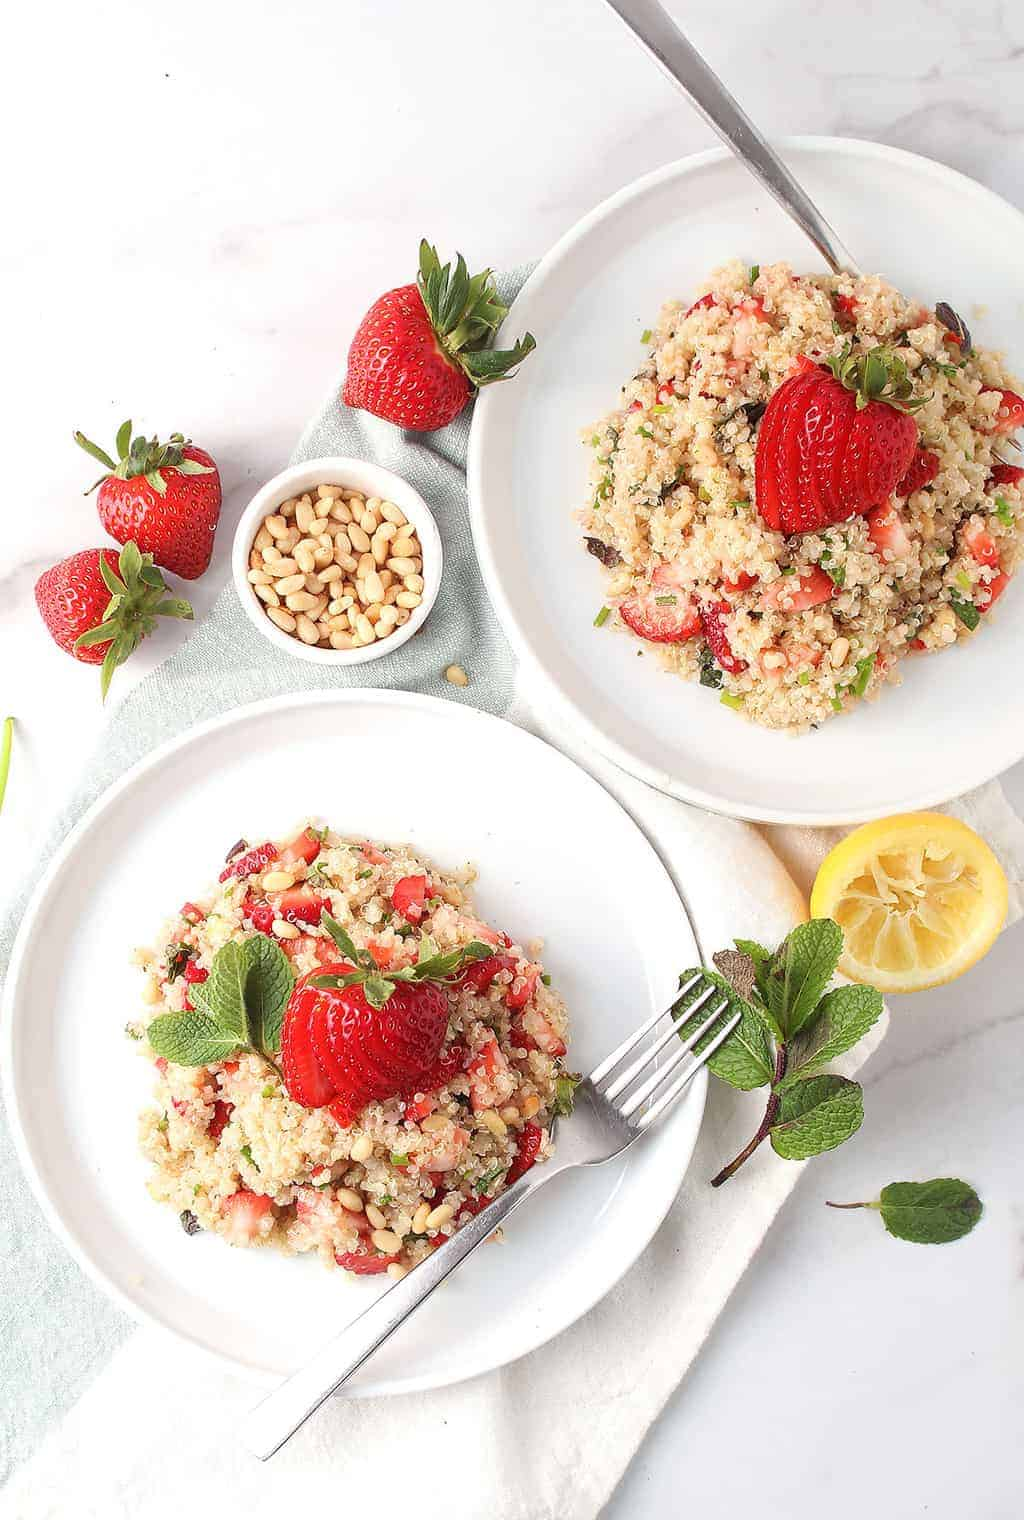 Two plates of Strawberry Quinoa Salad